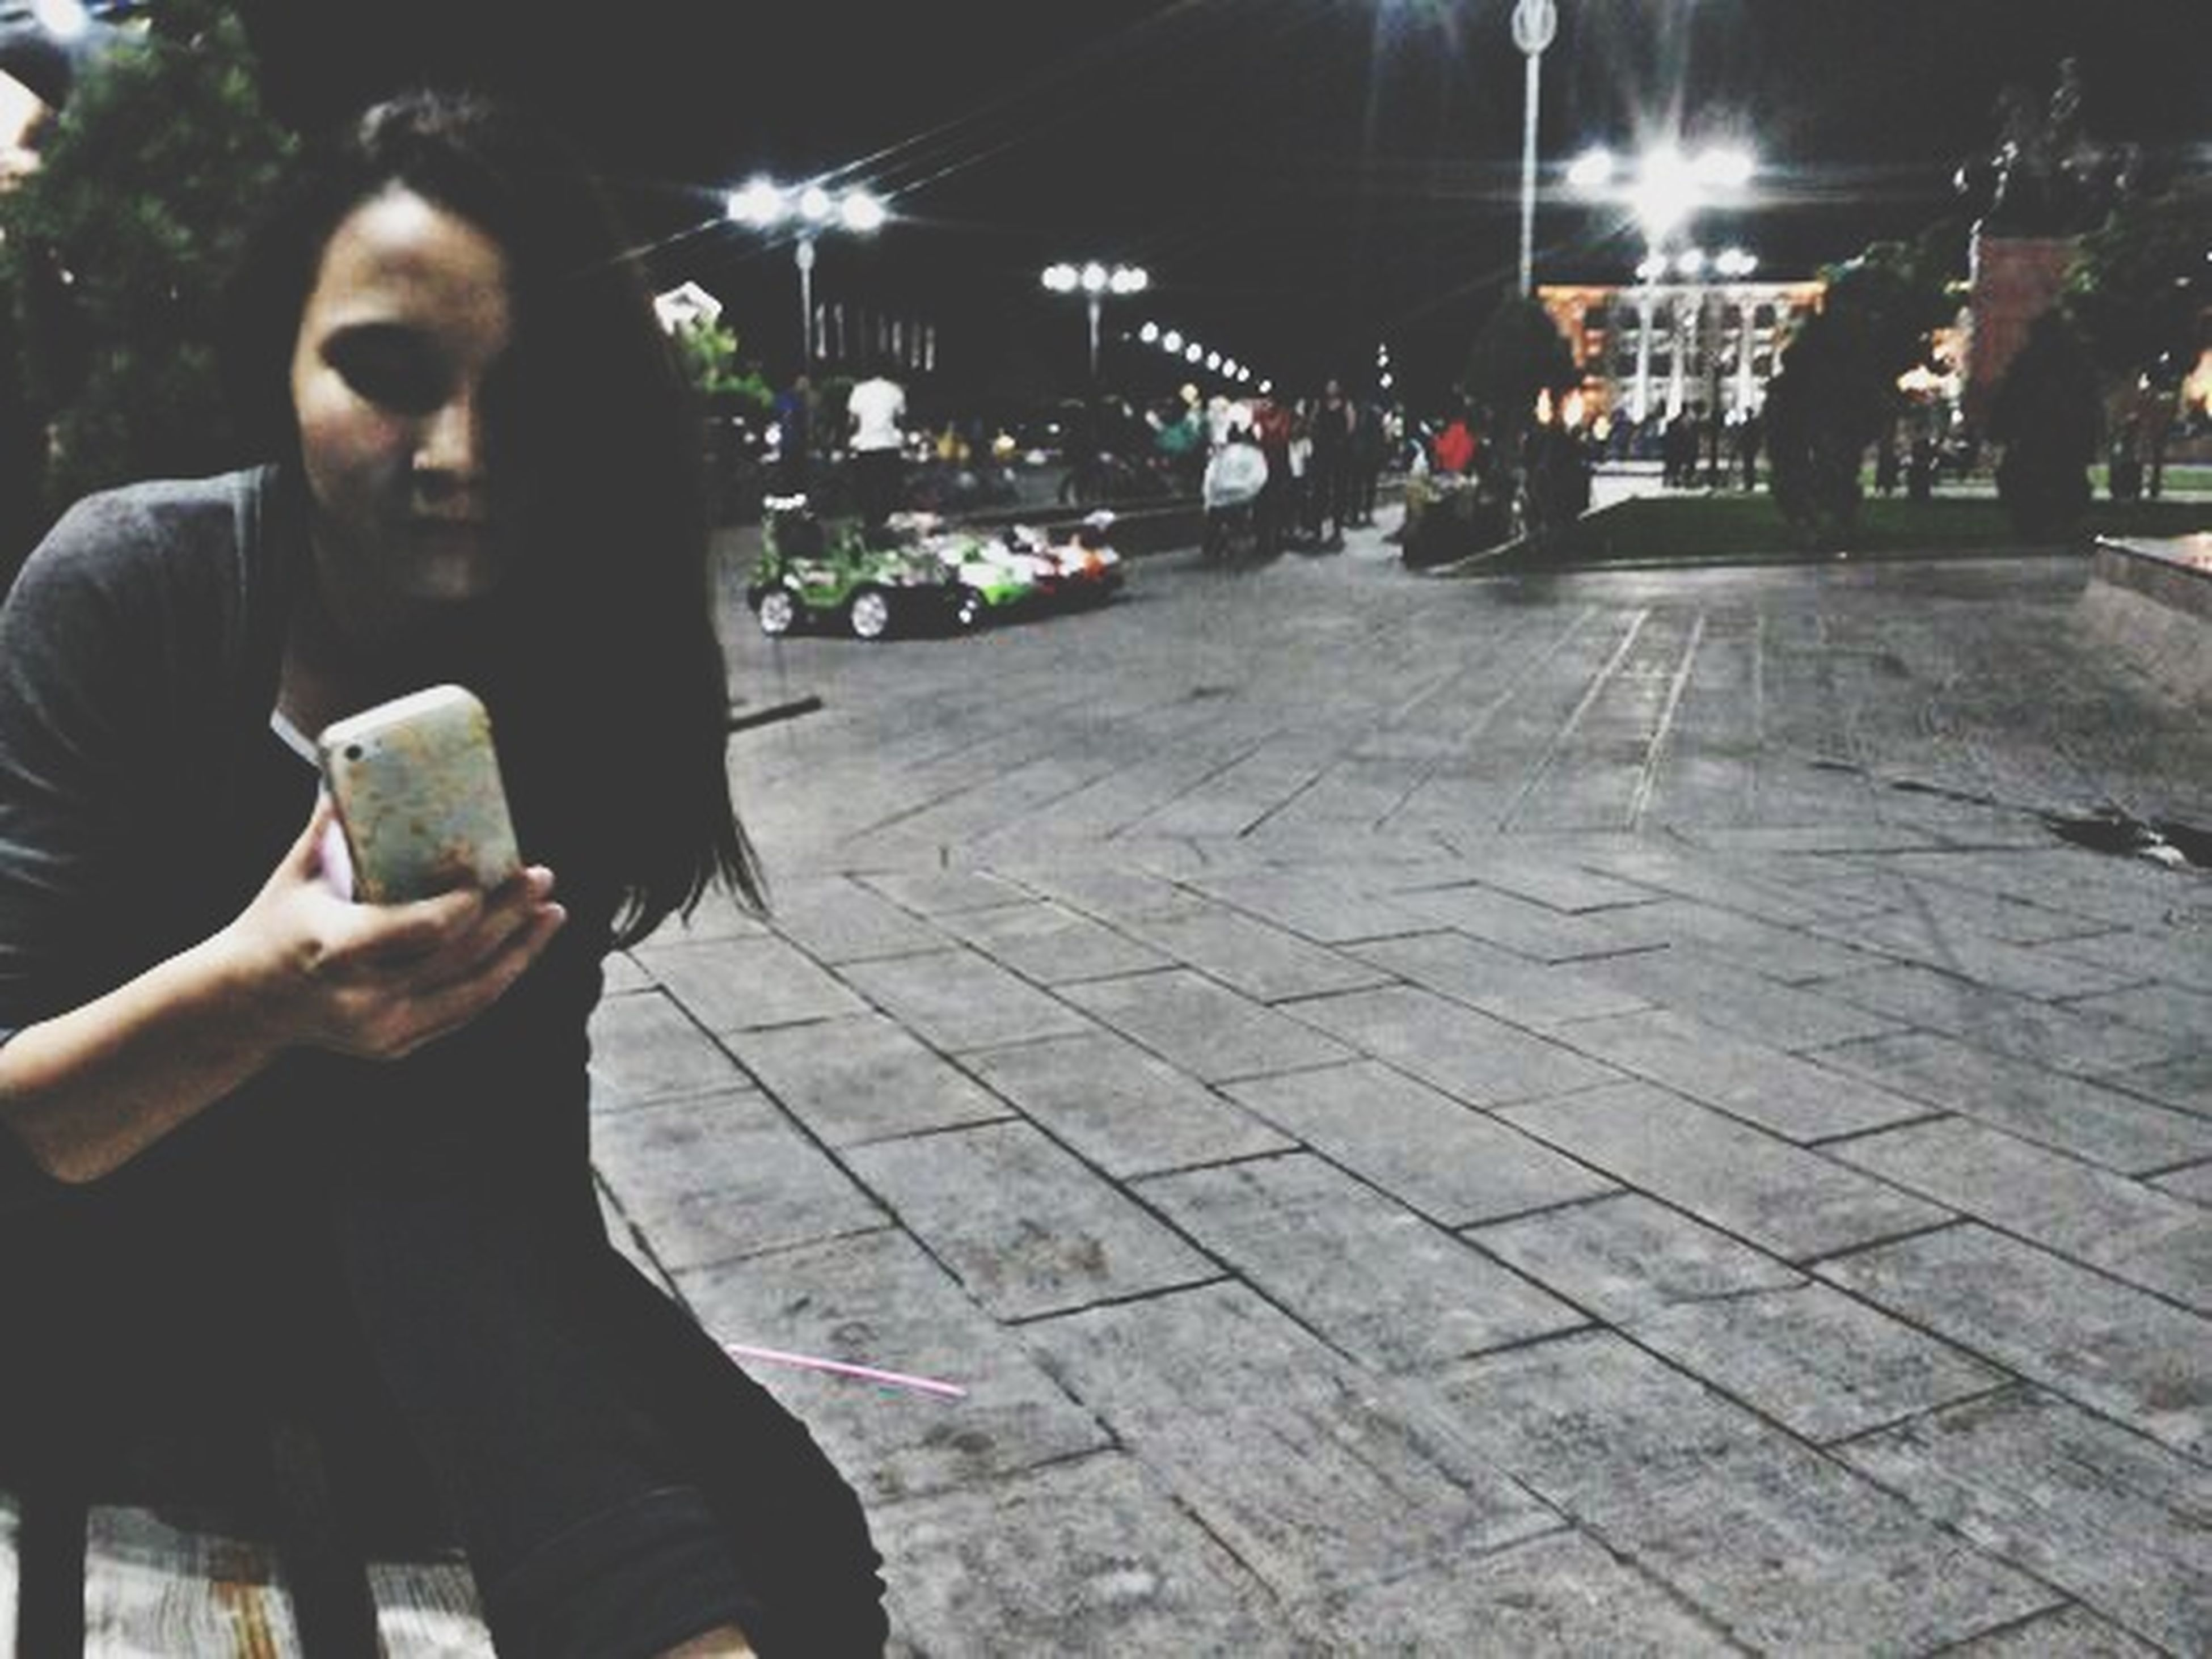 lifestyles, night, leisure activity, casual clothing, illuminated, young adult, standing, full length, person, street, young women, front view, sitting, three quarter length, city life, sidewalk, city